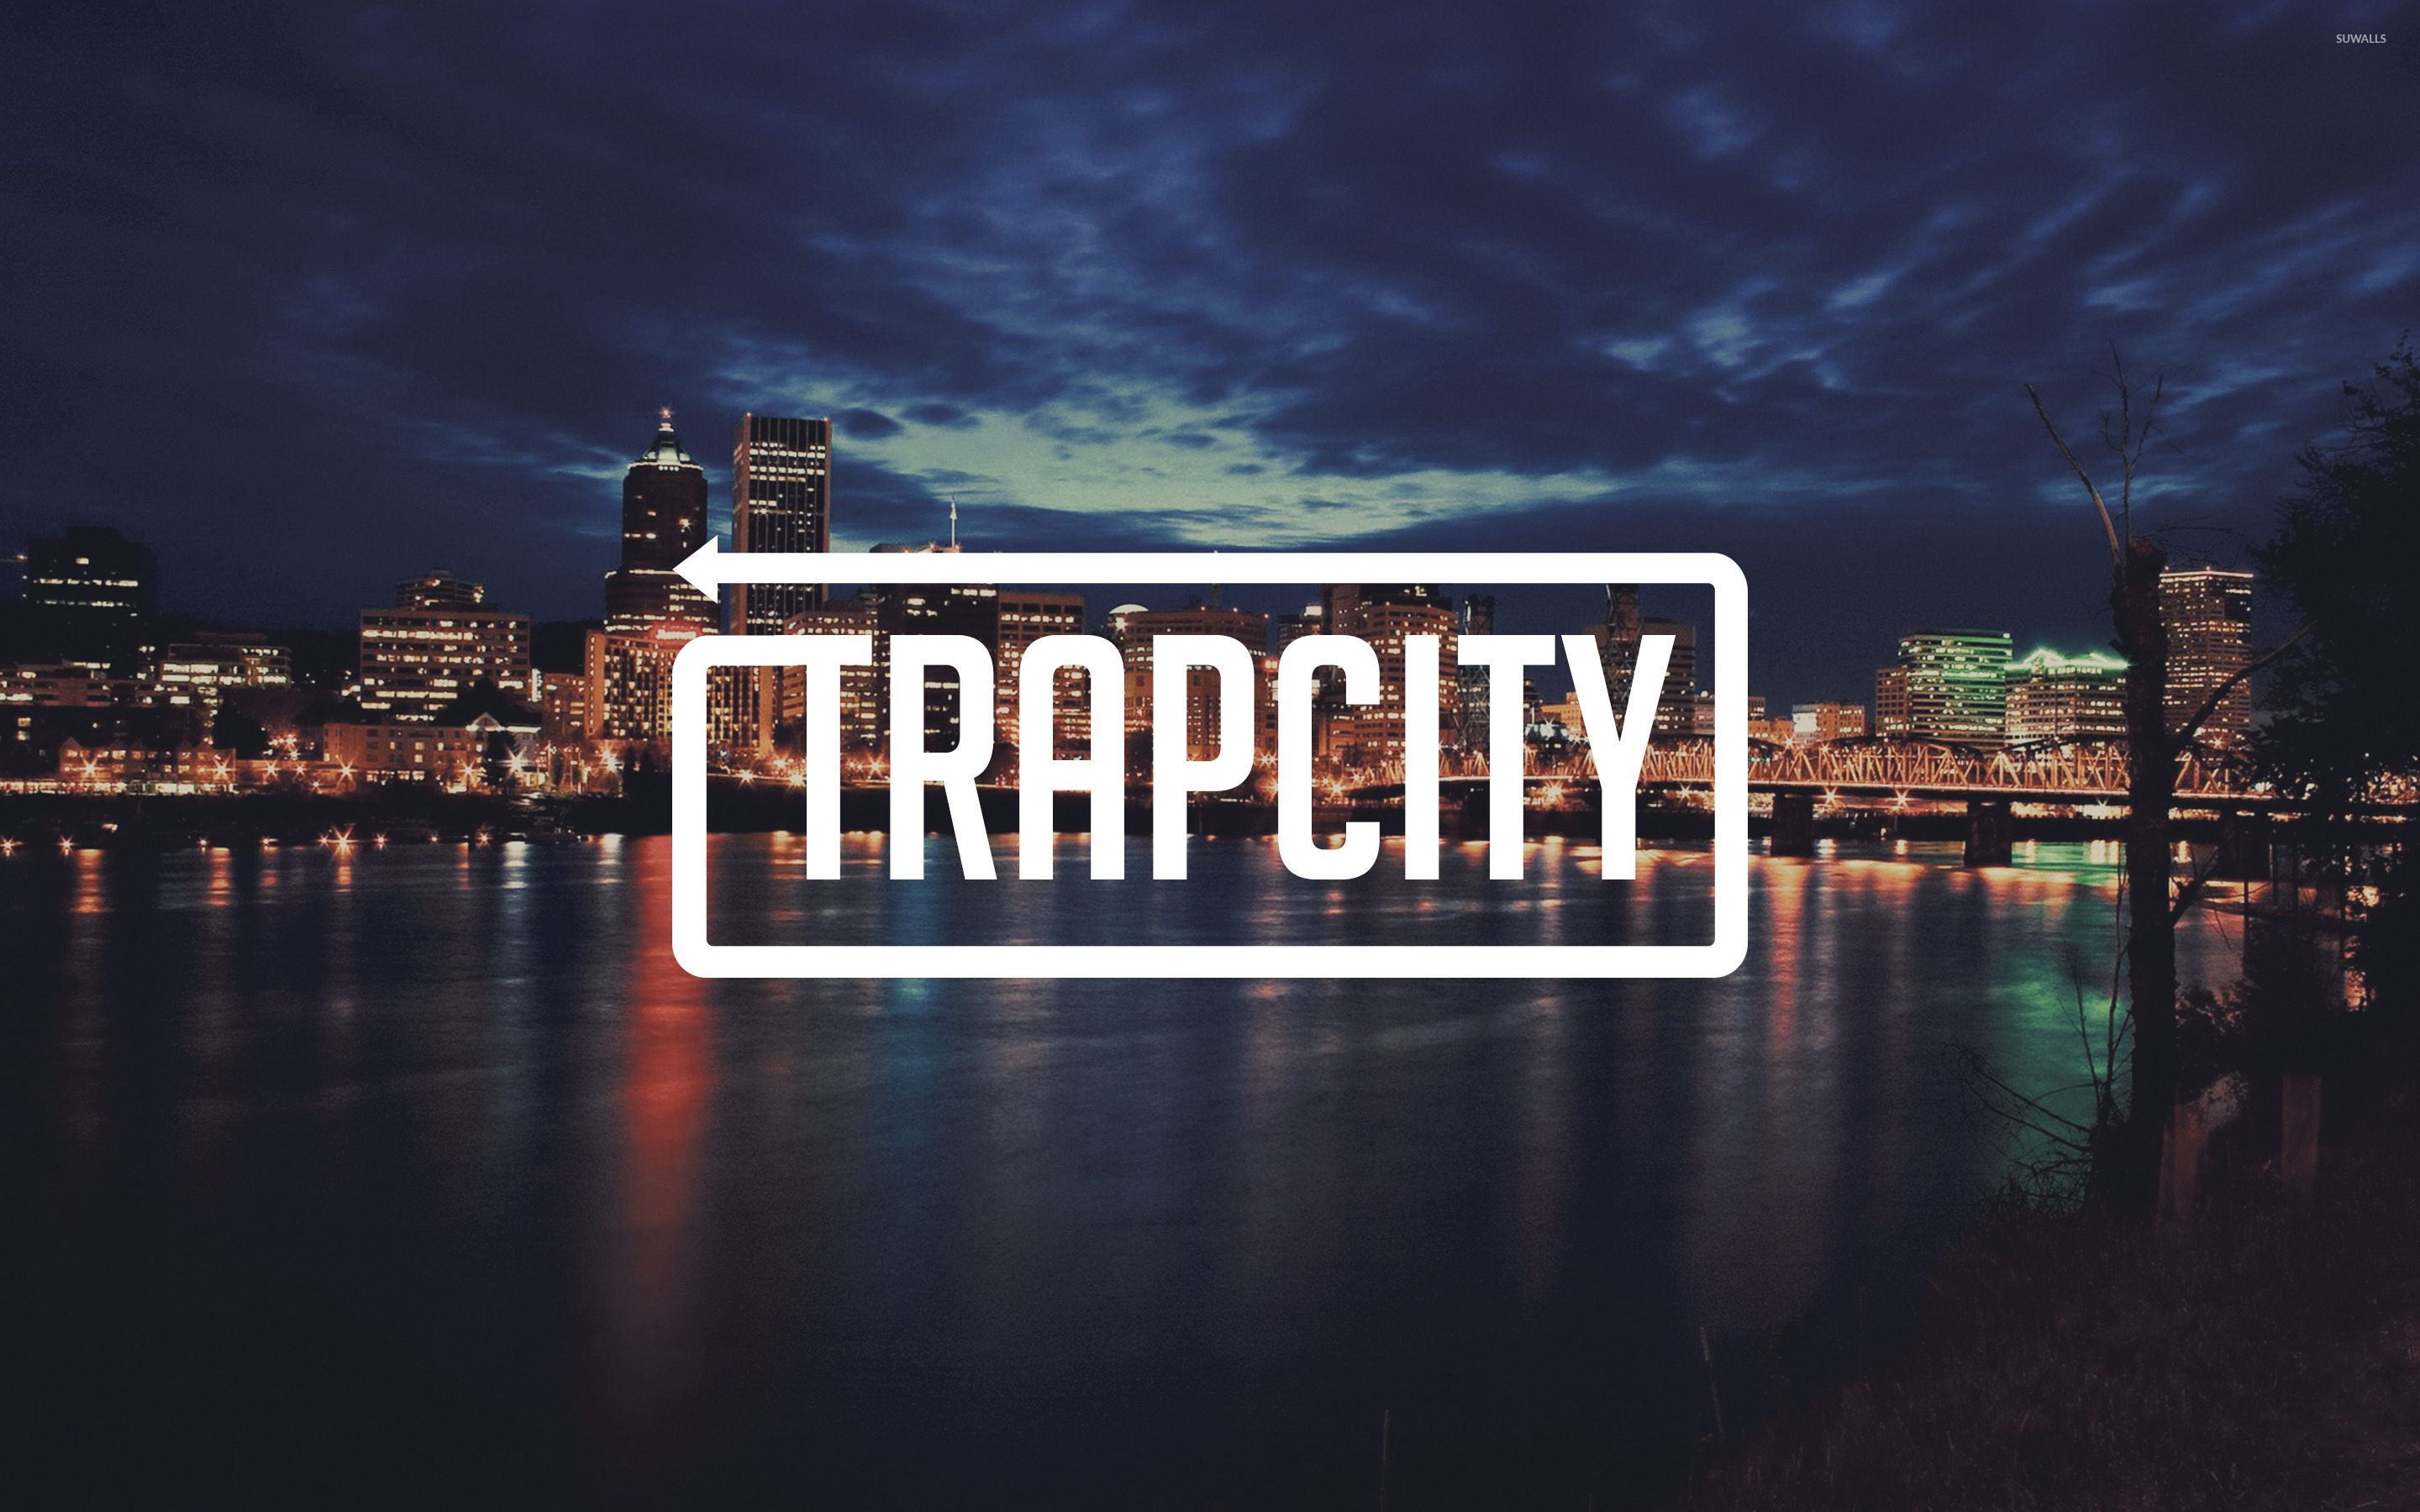 Sistar wallpaper 5 - Trap City In A Cloudy City Night Wallpaper Music